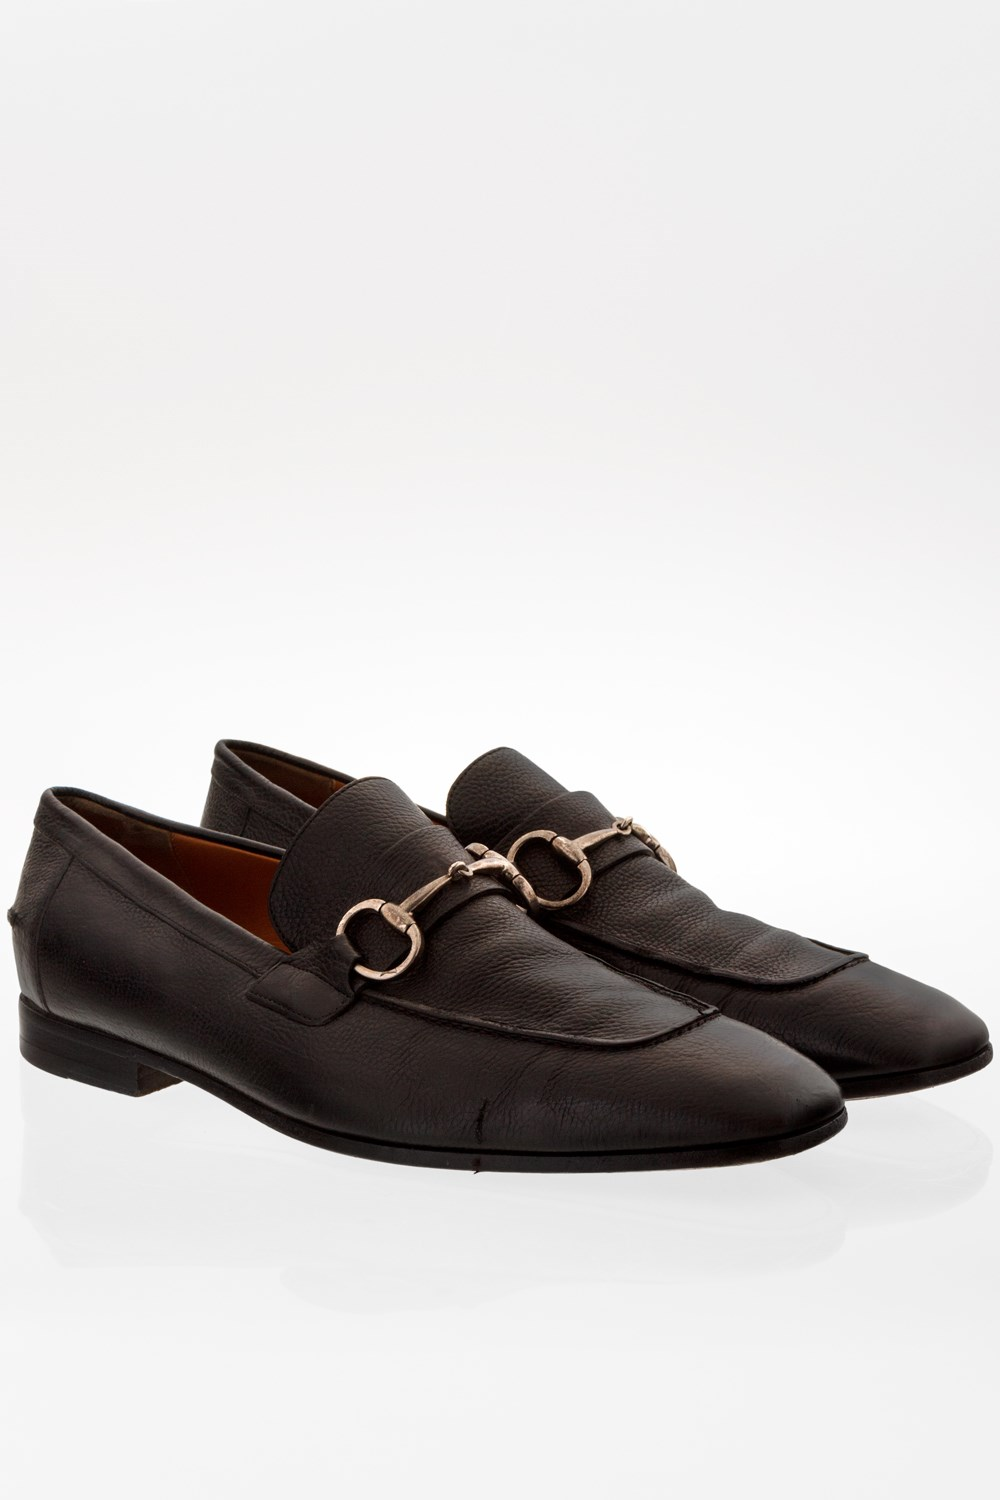 b2fda639df2 Black Jordaan Leather Loafers   Size  44E - Fit  True to size ...